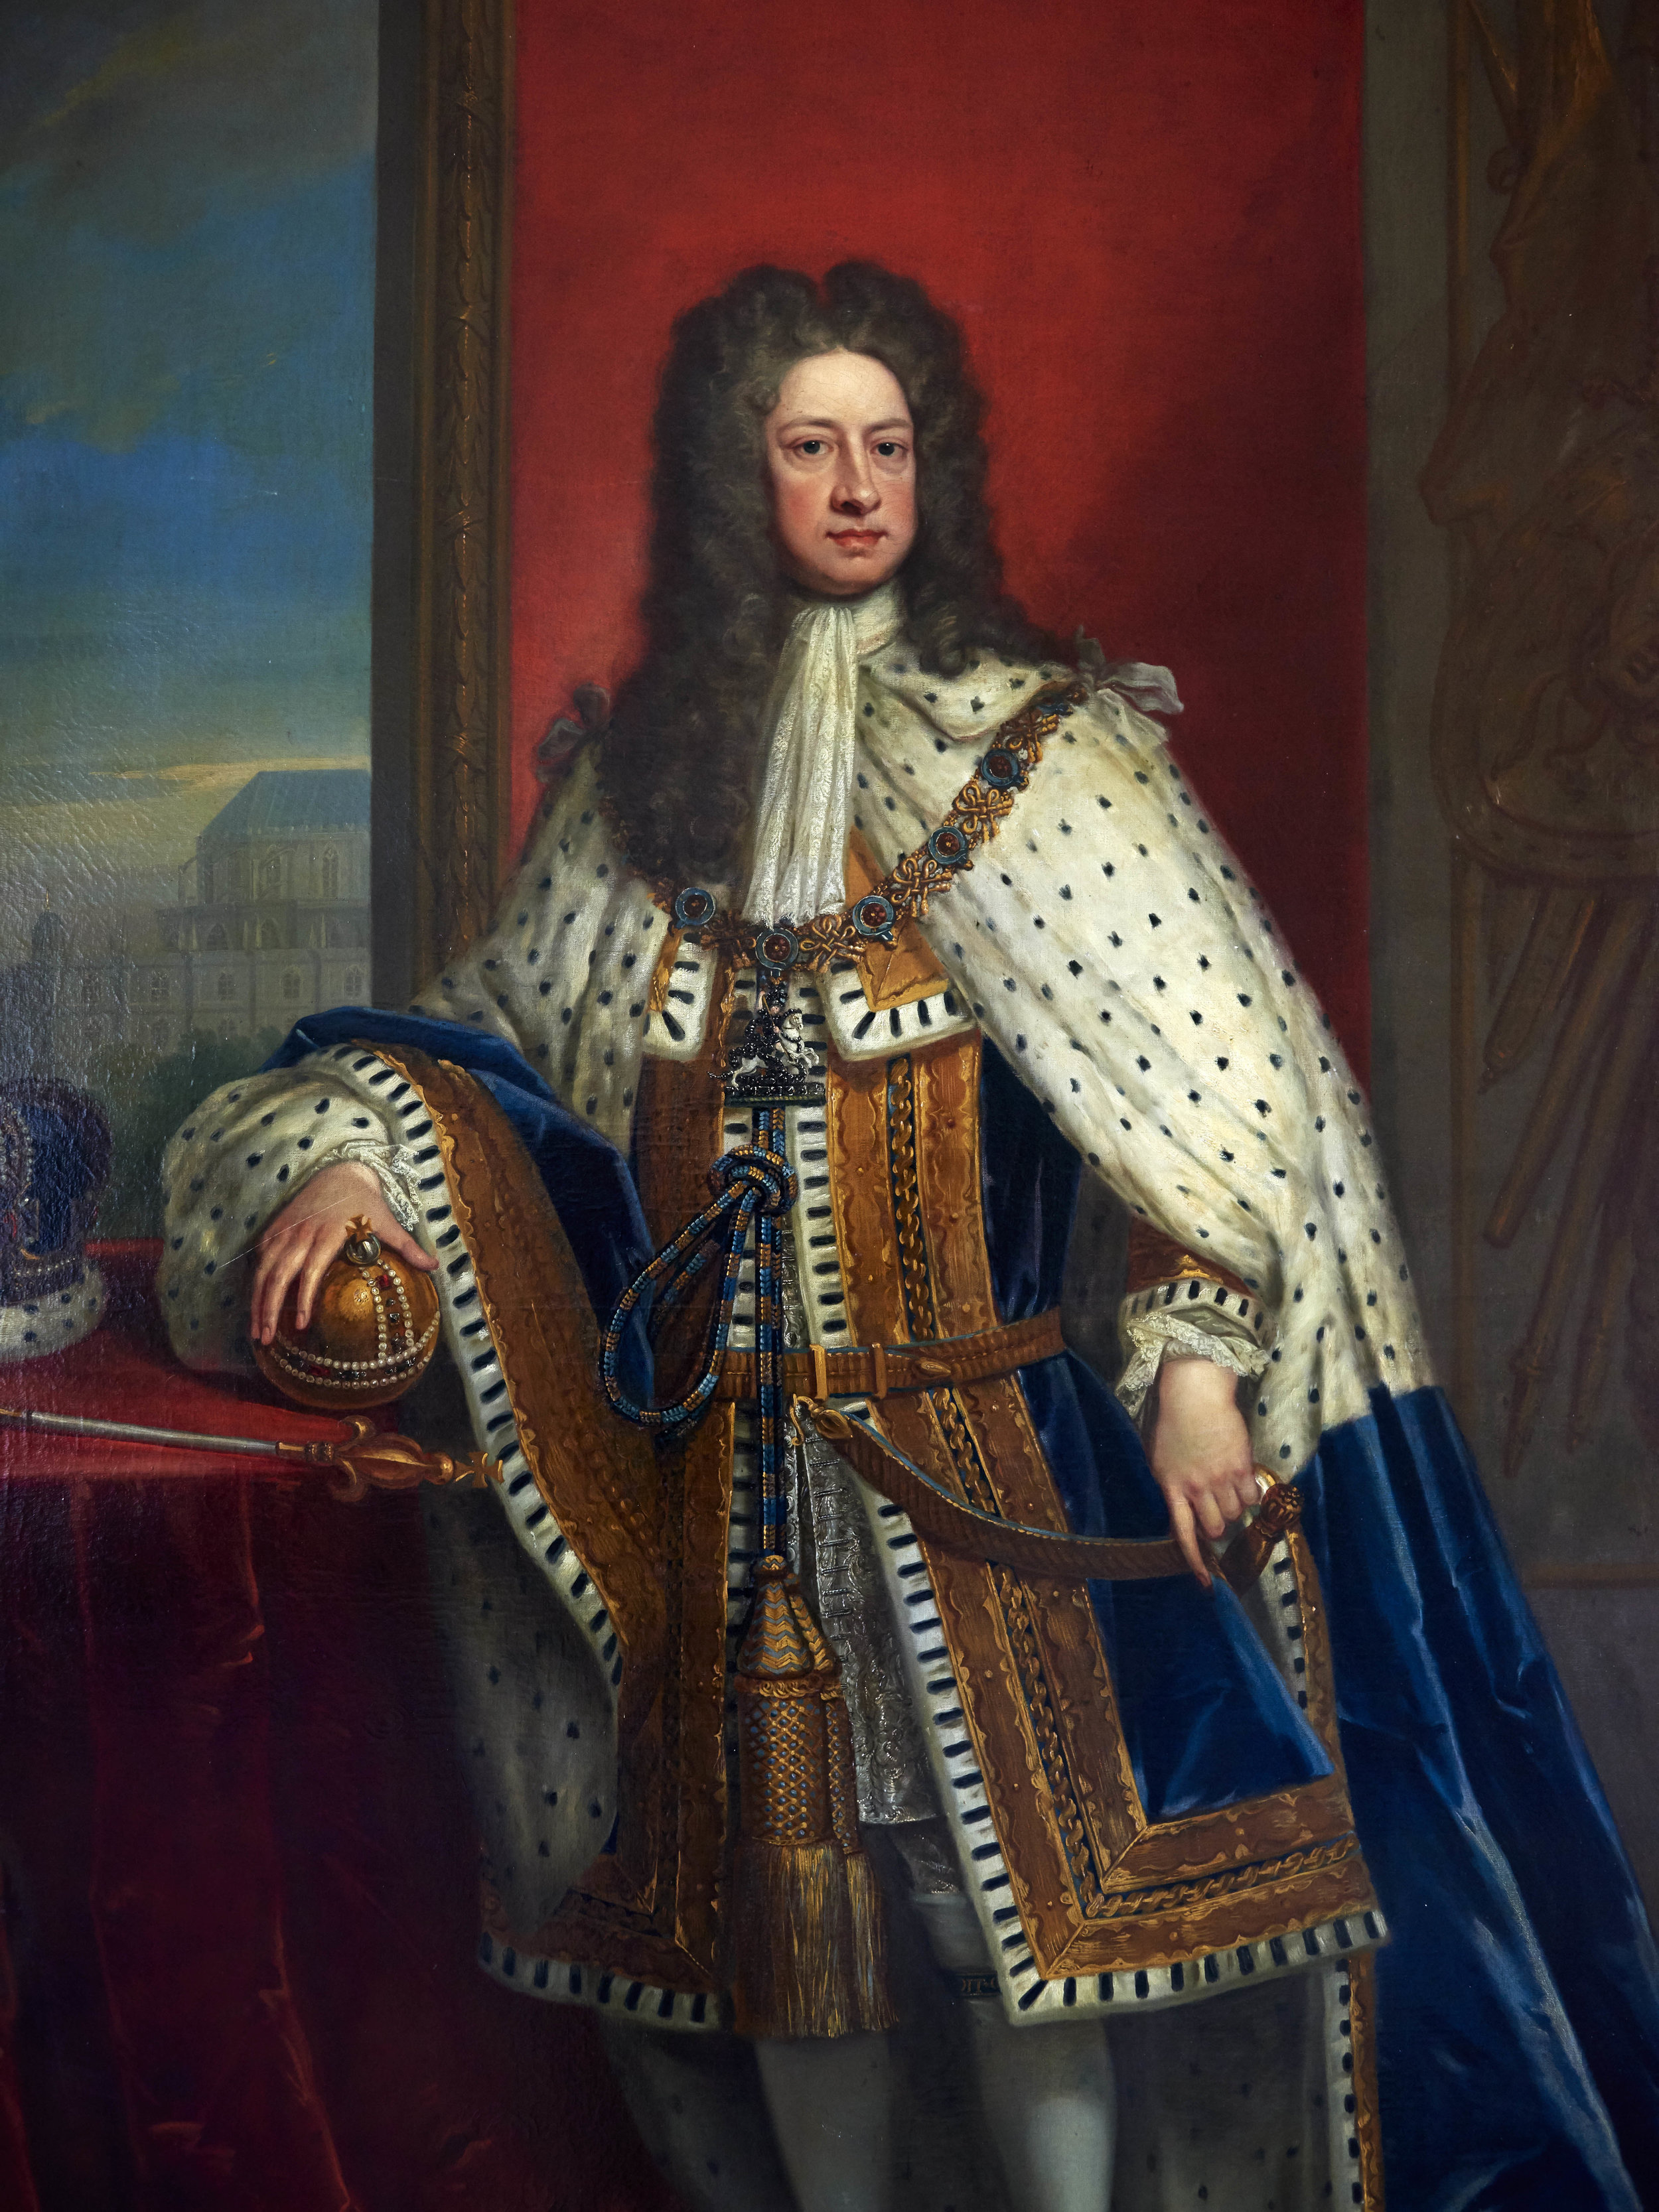 The portrait of King George I, given by his Majesty to Horatio, along with other portraits of the royal family, still hangs in the state dining room at Wolterton.